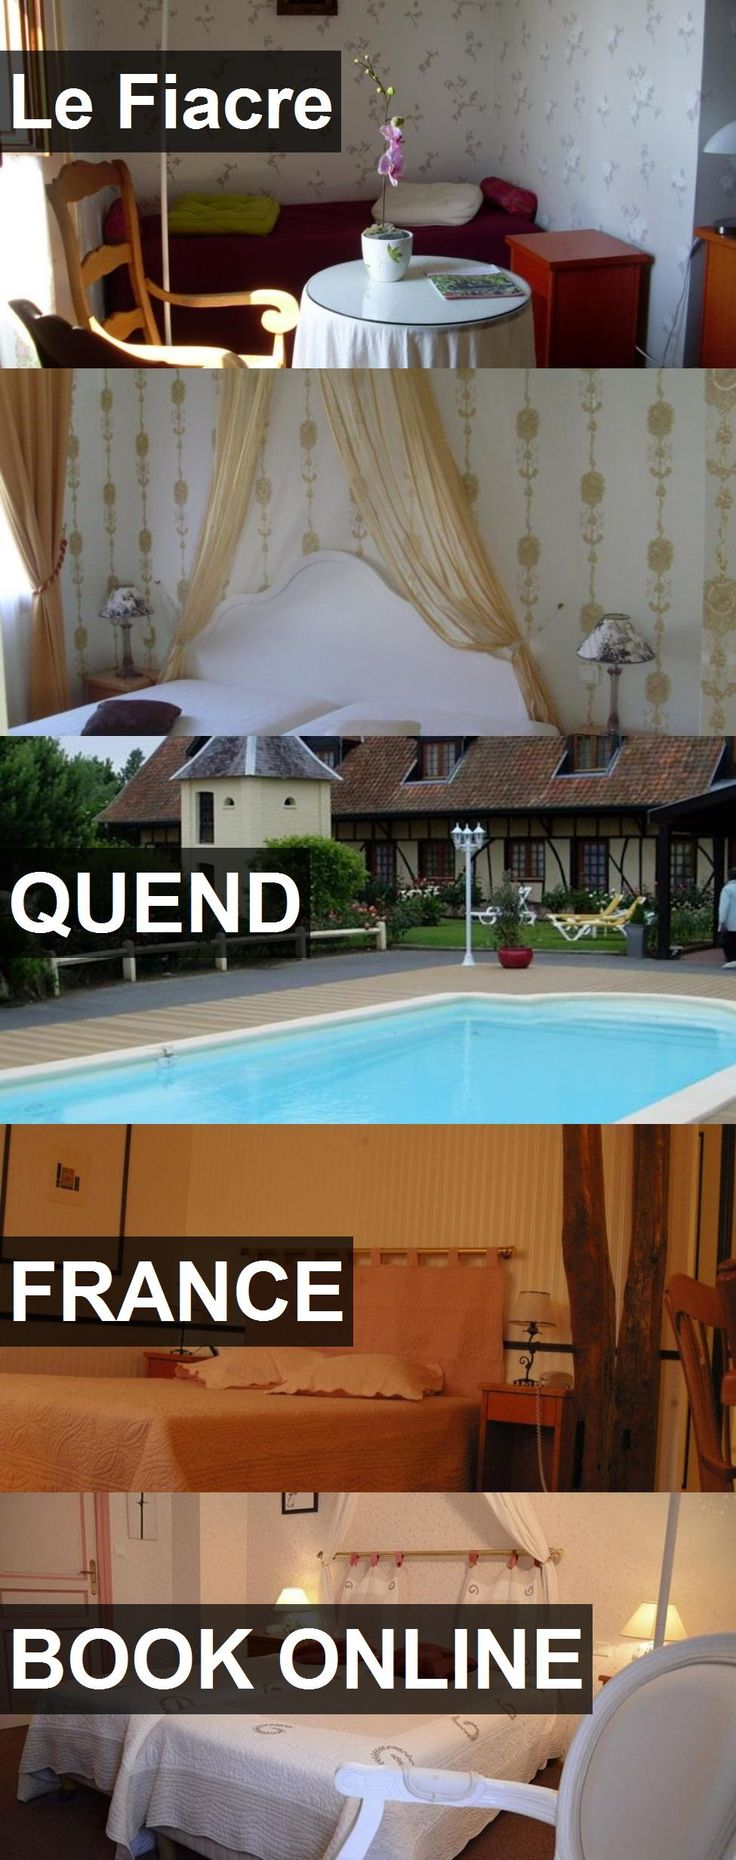 Hotel Le Fiacre in Quend, France. For more information, photos, reviews and best prices please follow the link. #France #Quend #travel #vacation #hotel